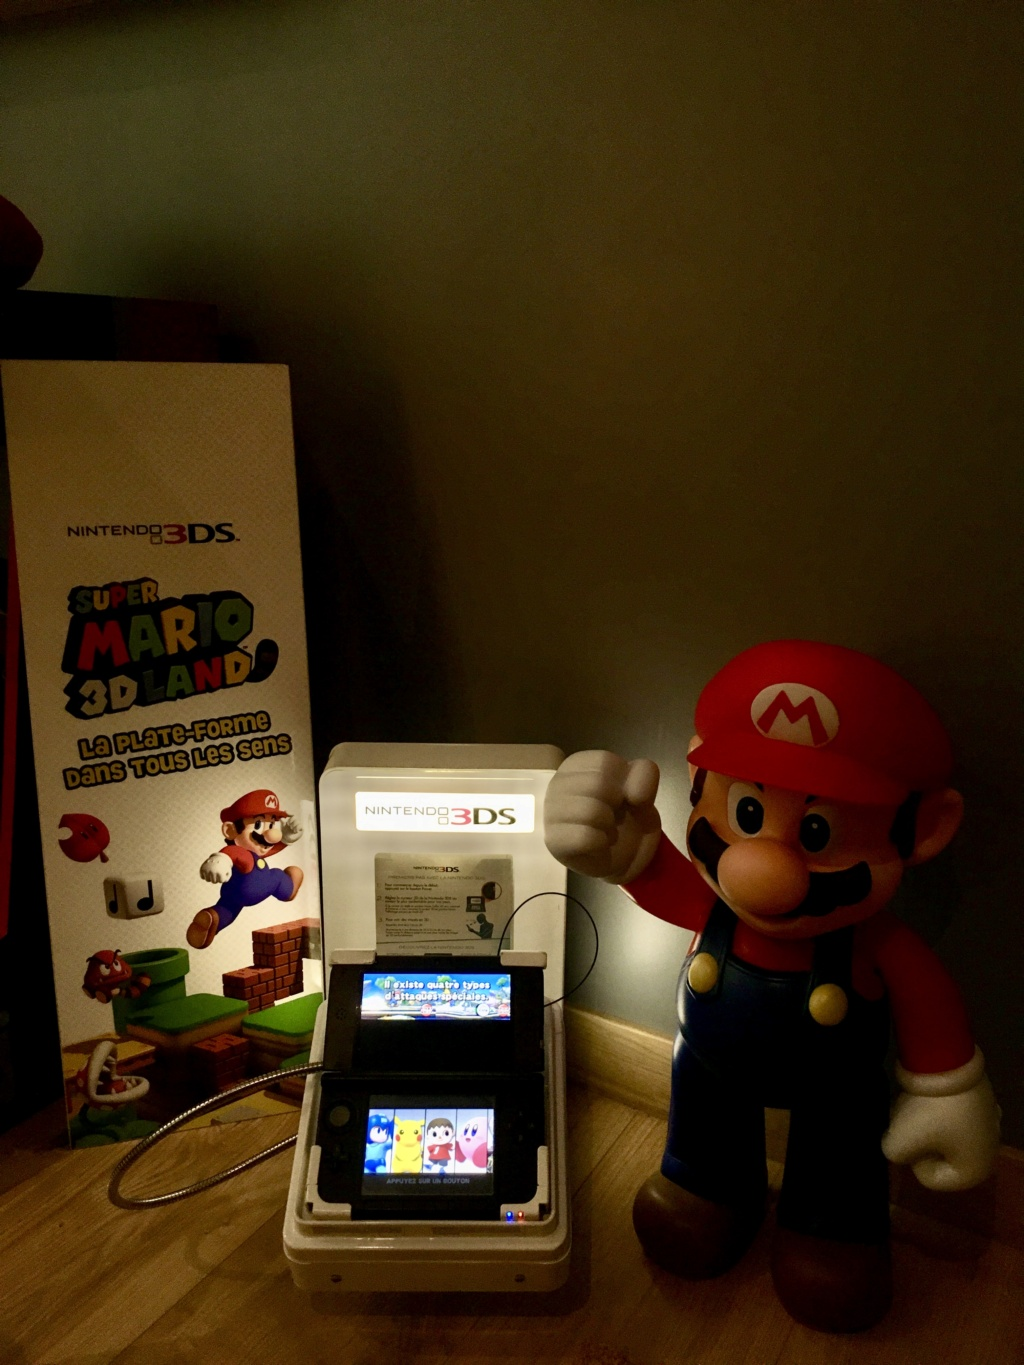 Vos cartouches nfr not for resale demo version 3ds ds etc... Img_e210